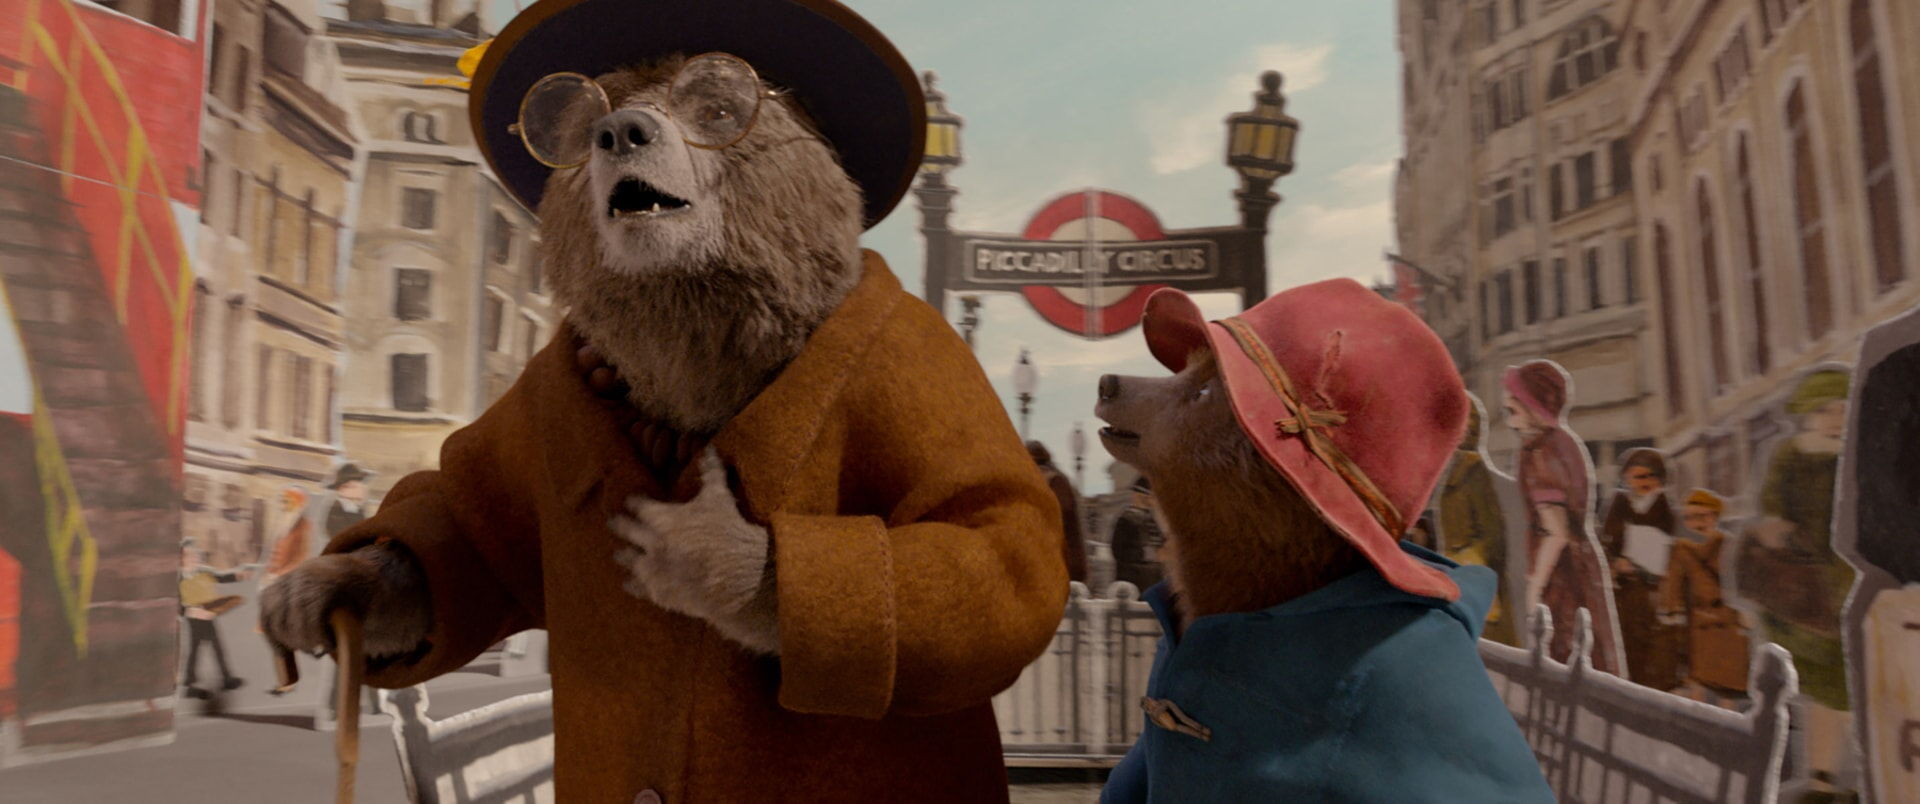 """Aunt Lucy voiced by IMELDA STAUNTON and Paddington voiced by BEN WHISHAW in the family adventure """"PADDINGTON 2,"""" from Warner Bros. Pictures and STUDIOCANAL, in association with Anton Capital Entertainment S.C.A., a Warner Bros. Pictures release."""